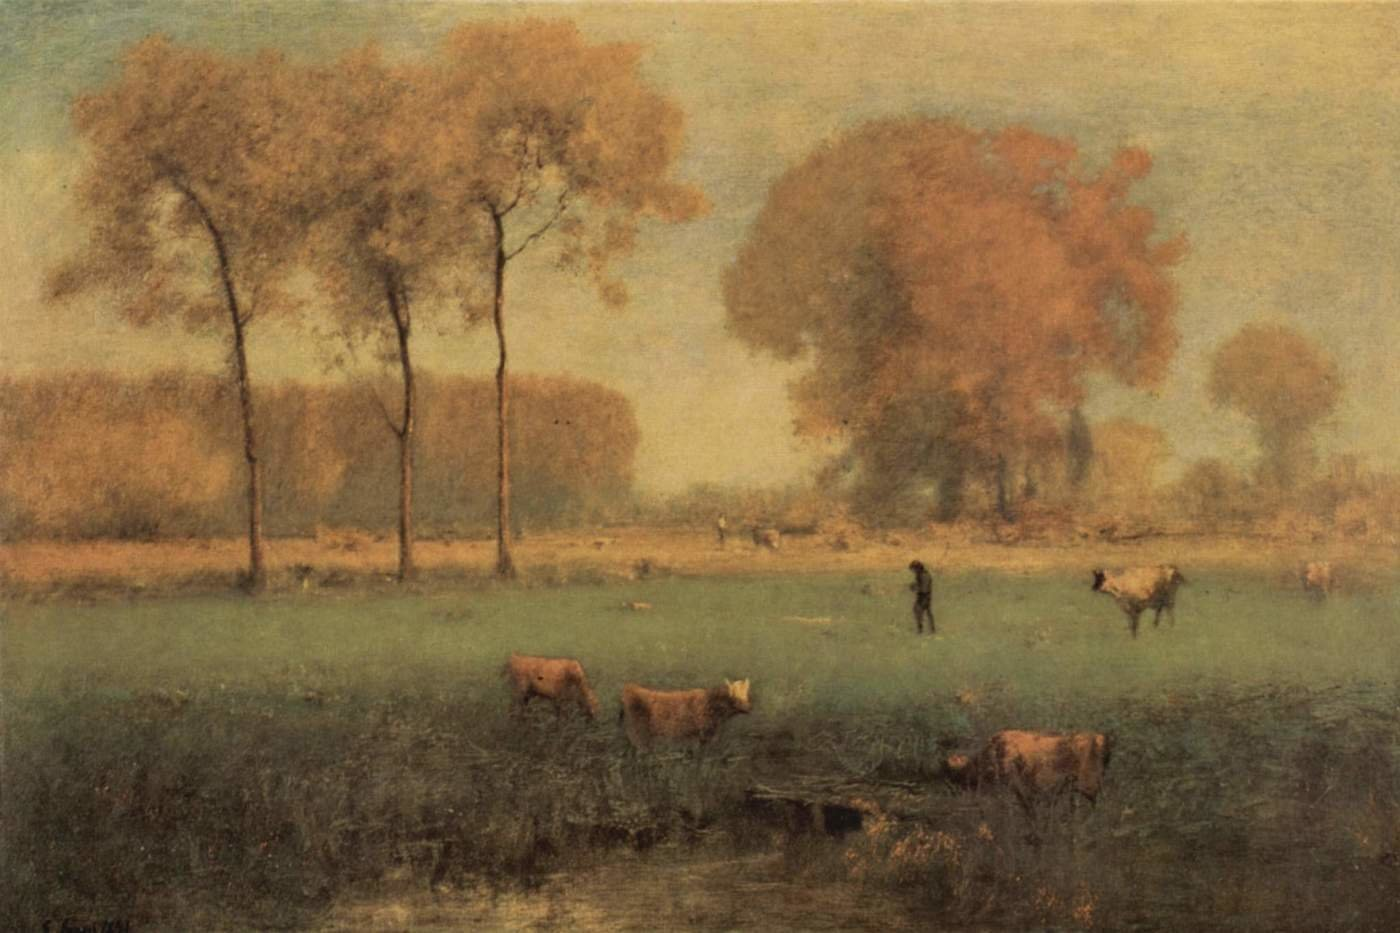 George Inness background